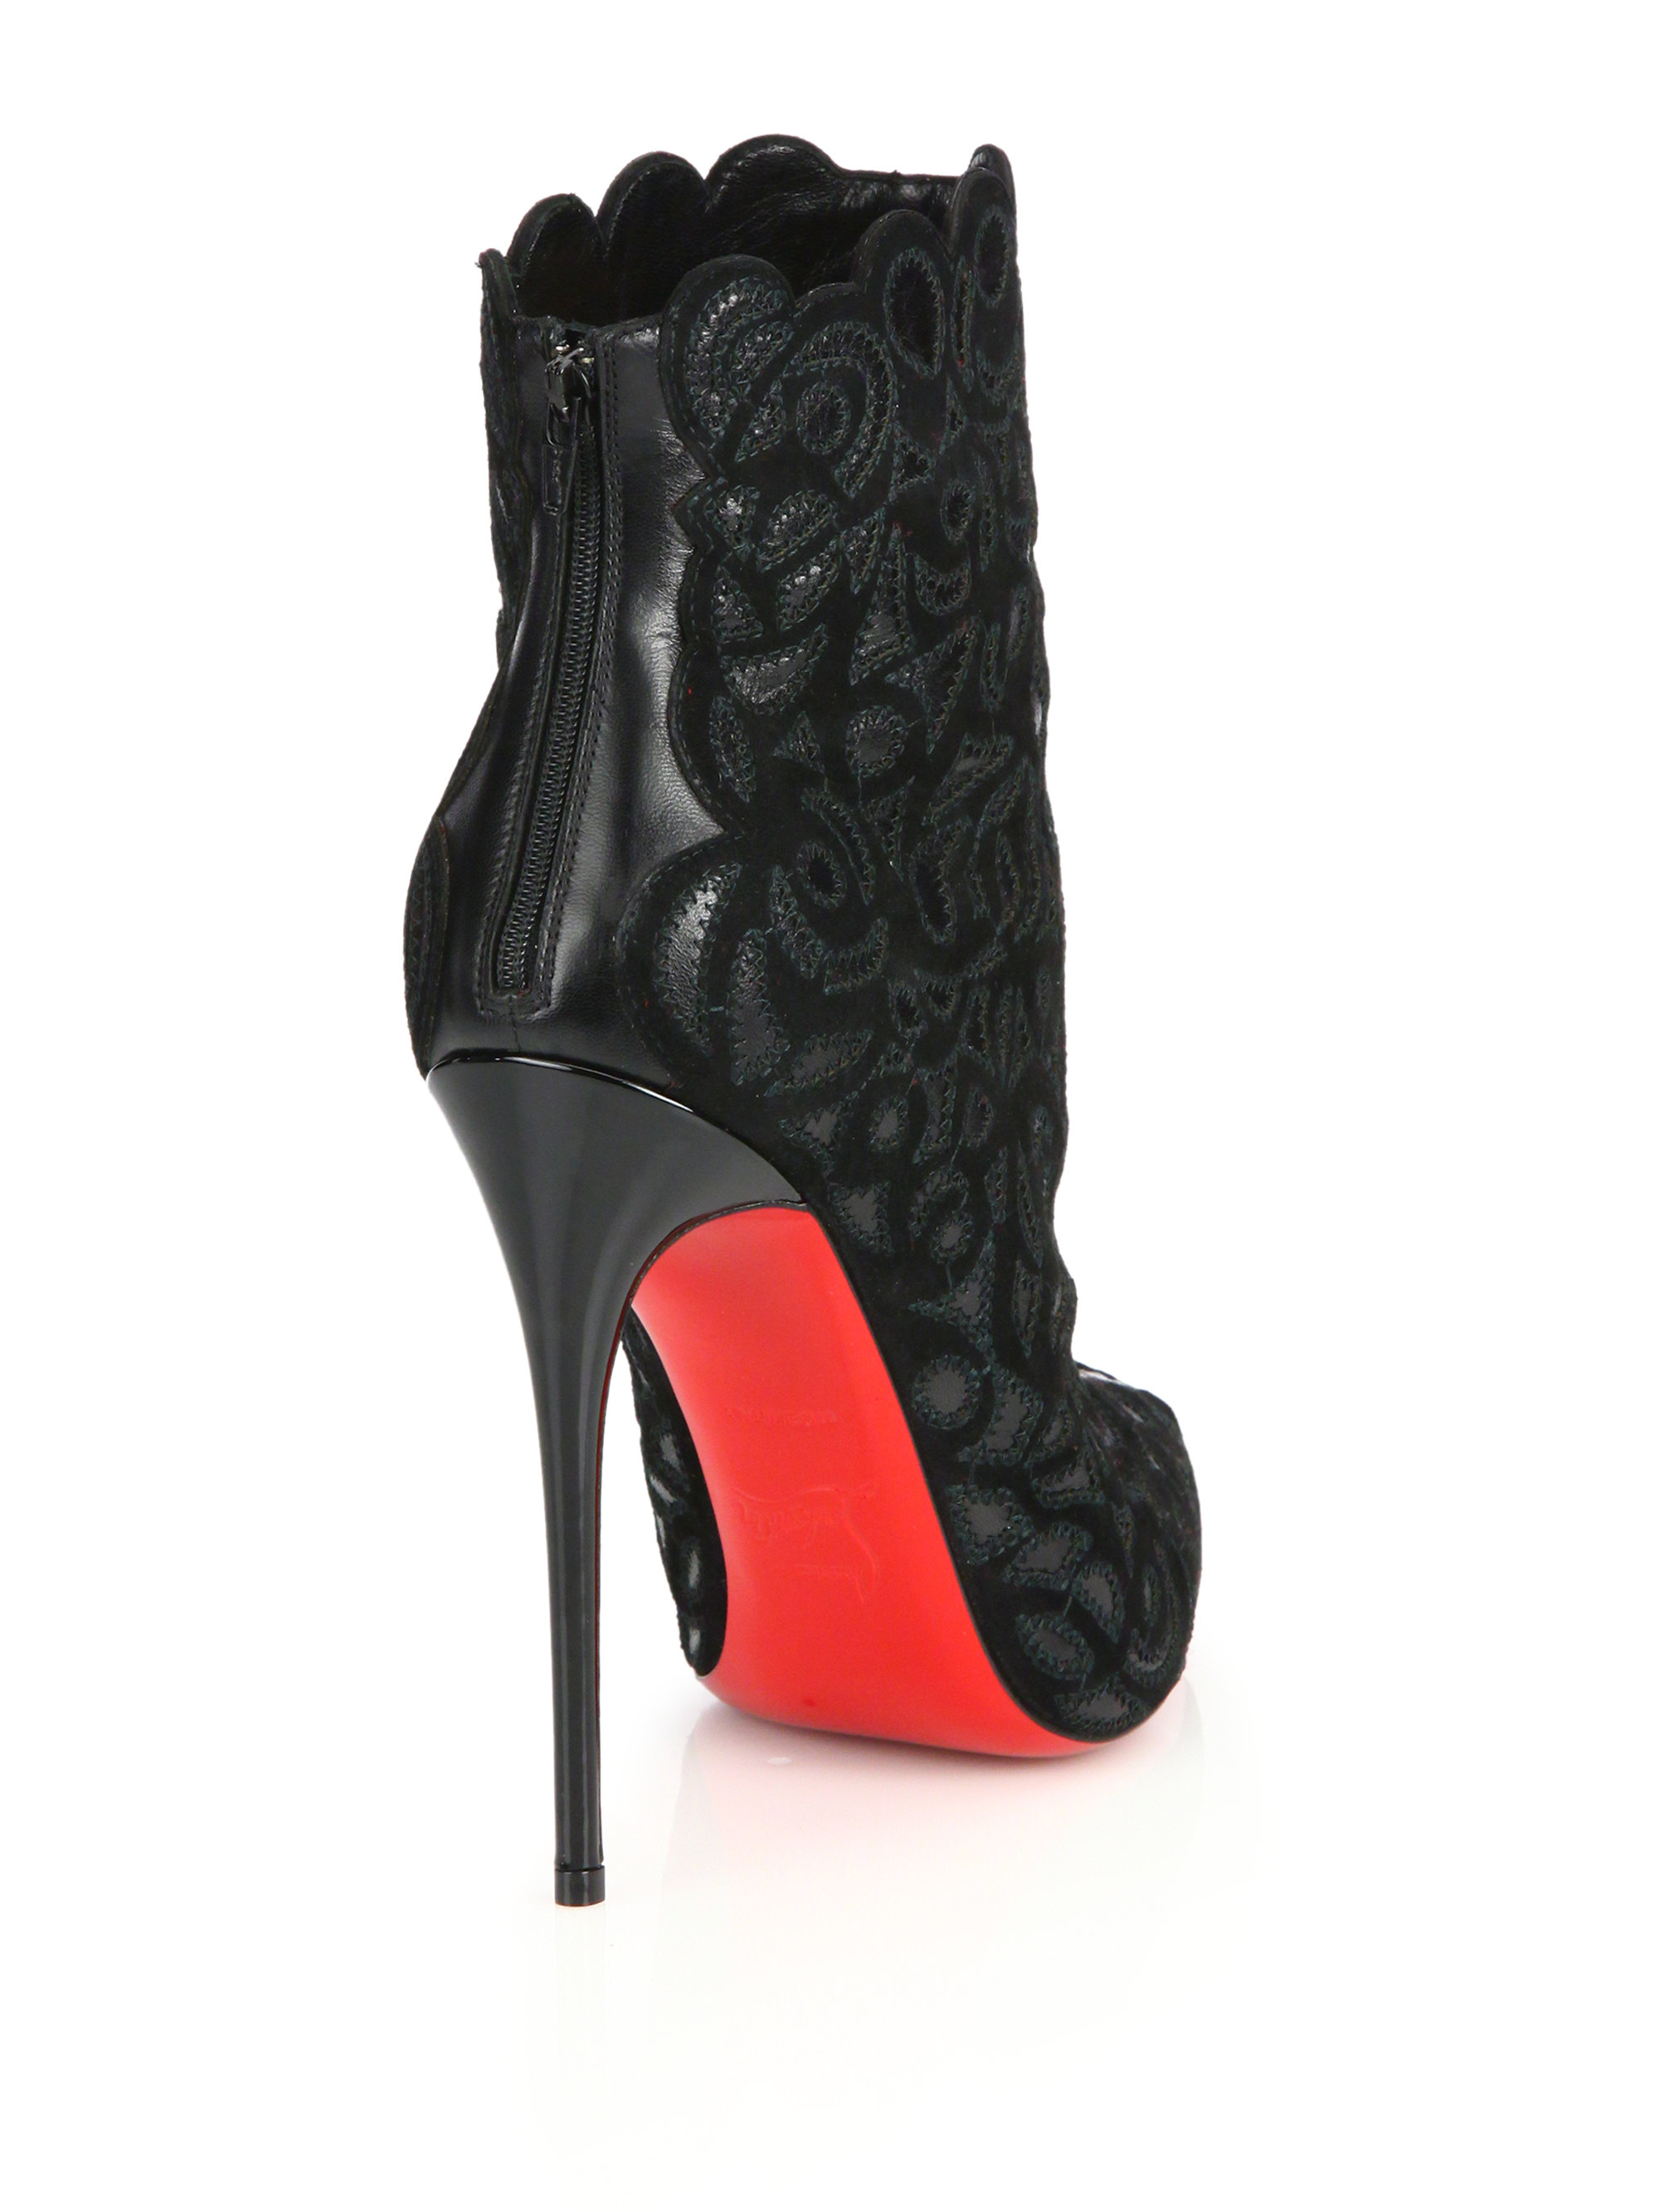 Christian Louboutin Indiboot Embroidered Suede Boots In